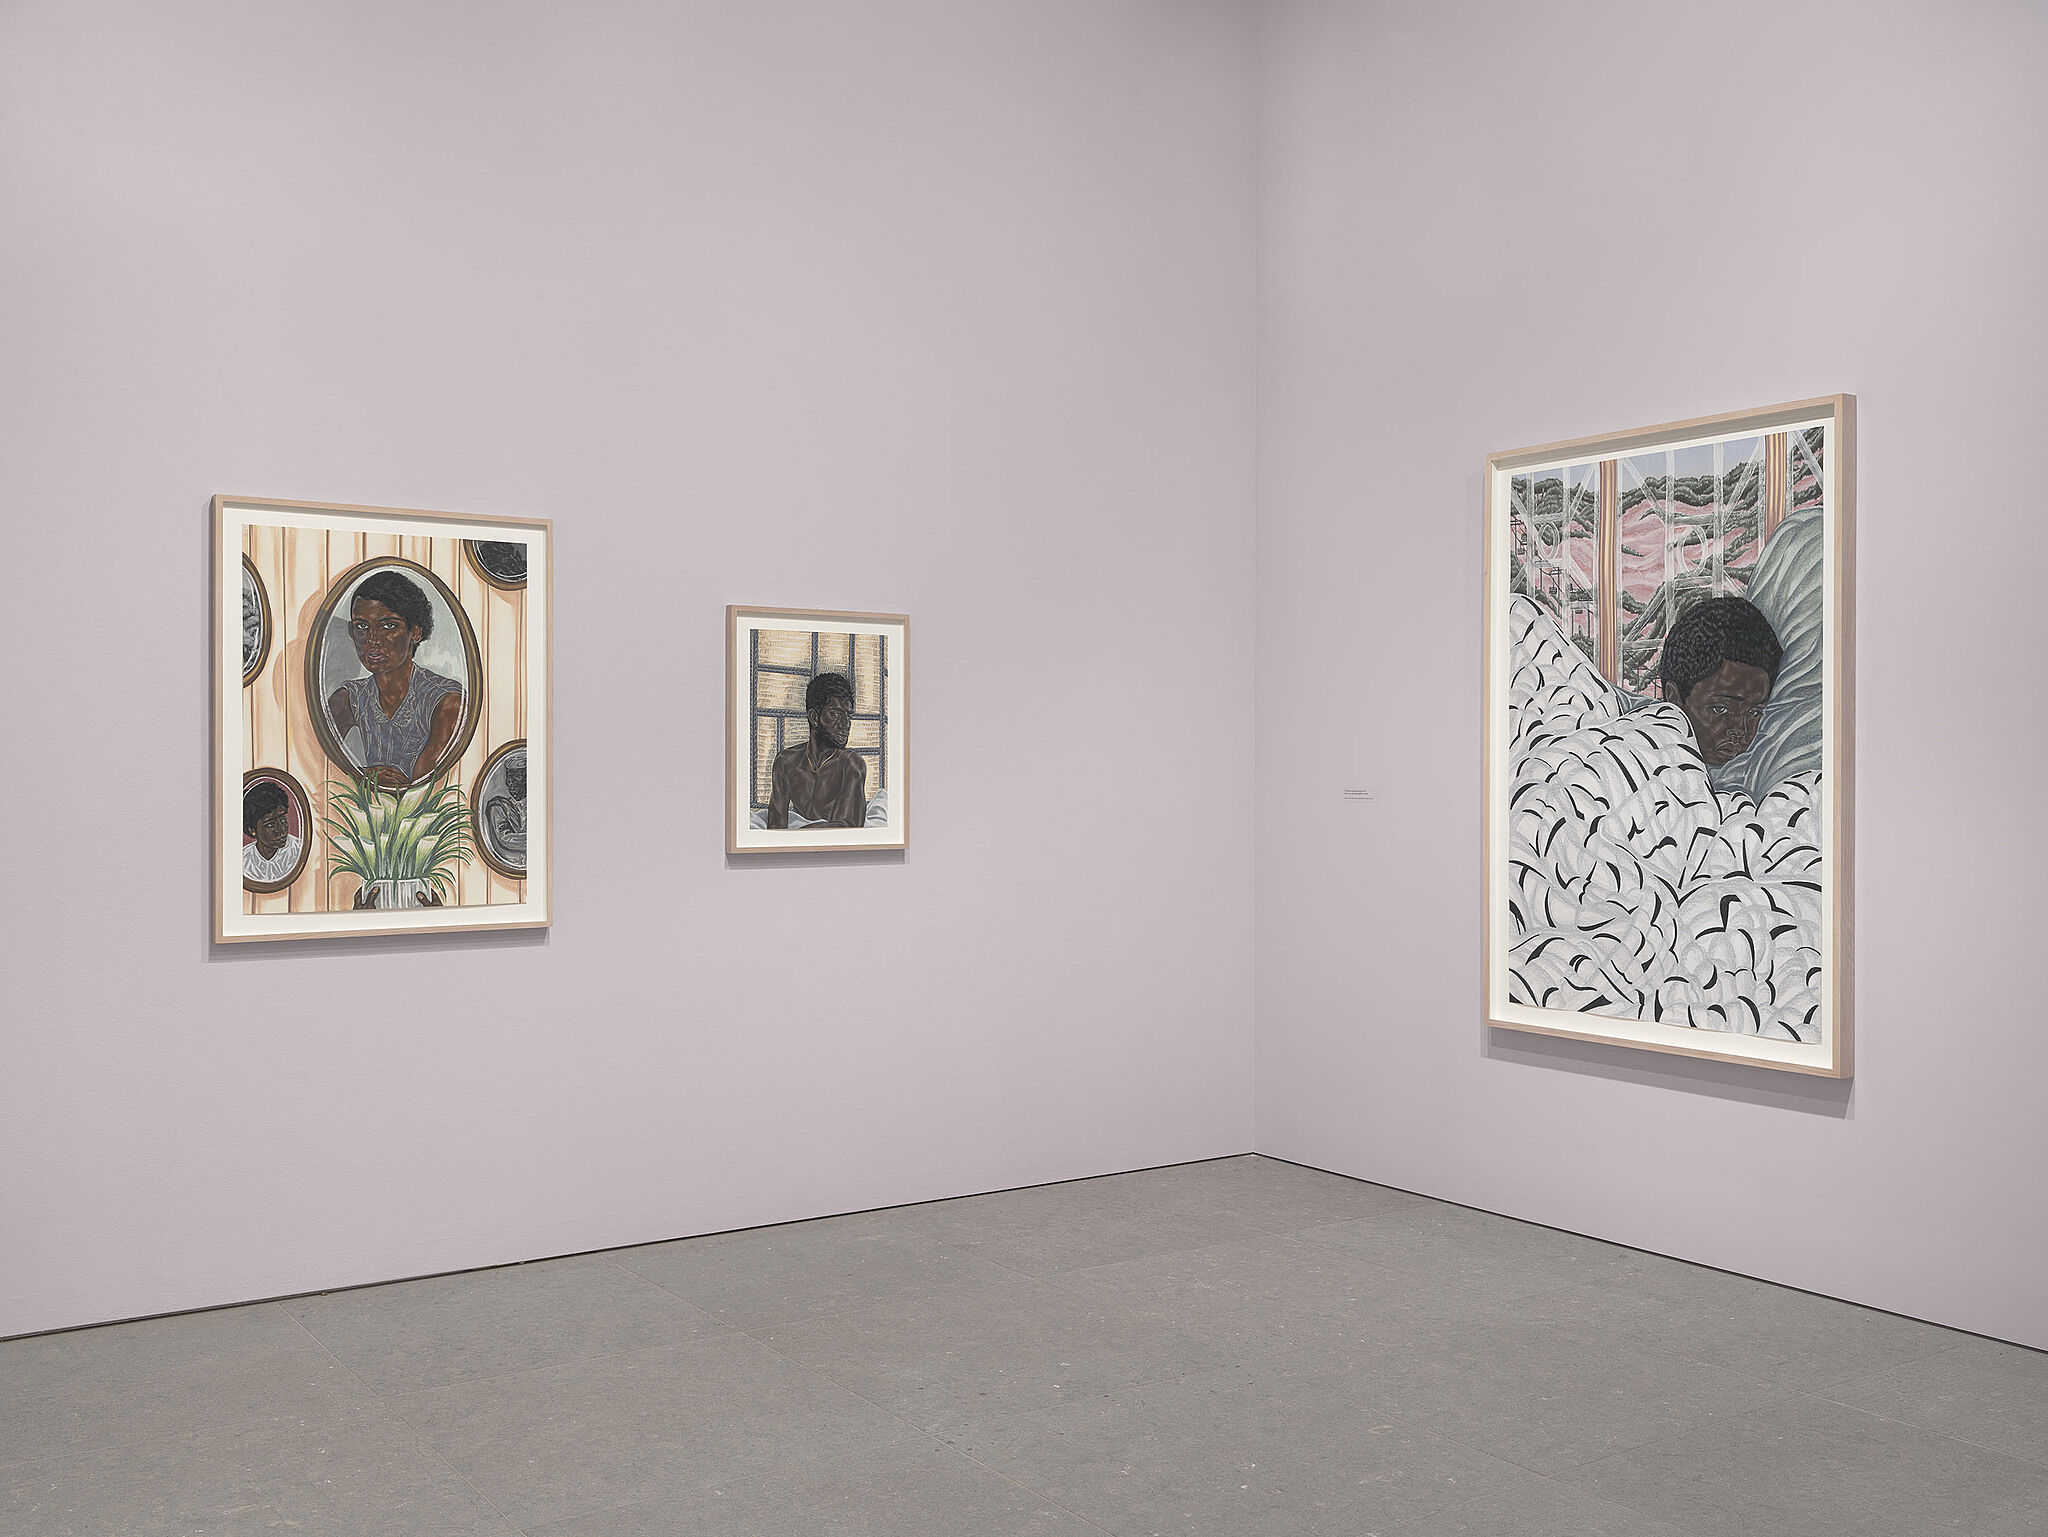 Installation view of Toyin Ojih Odutola: To Wander Determined.